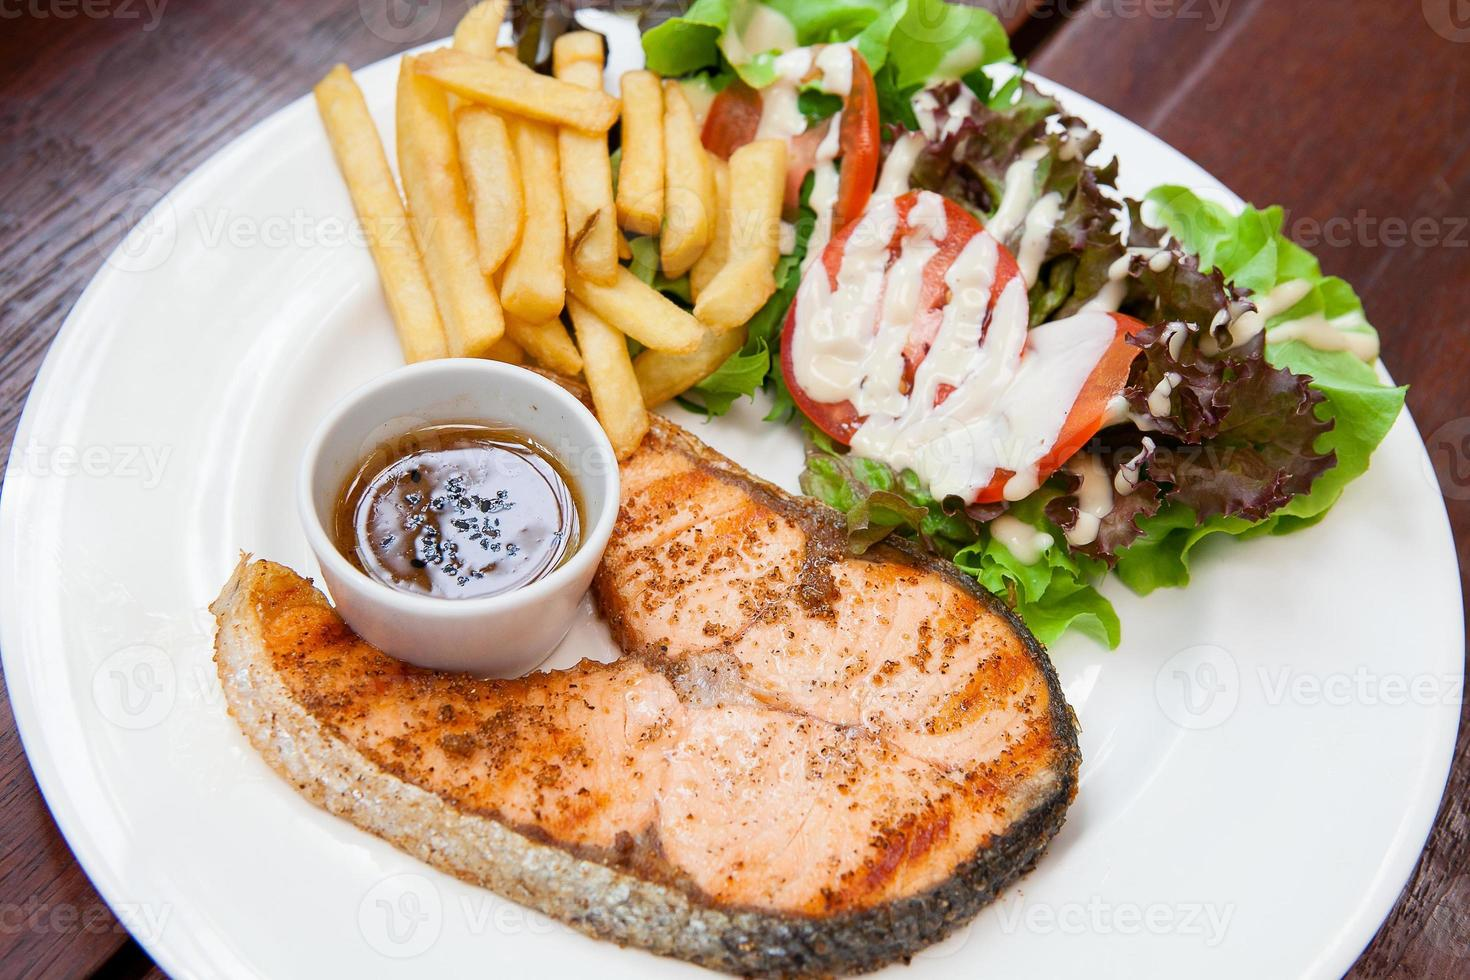 Salmon Steak with salad and French Fries. photo